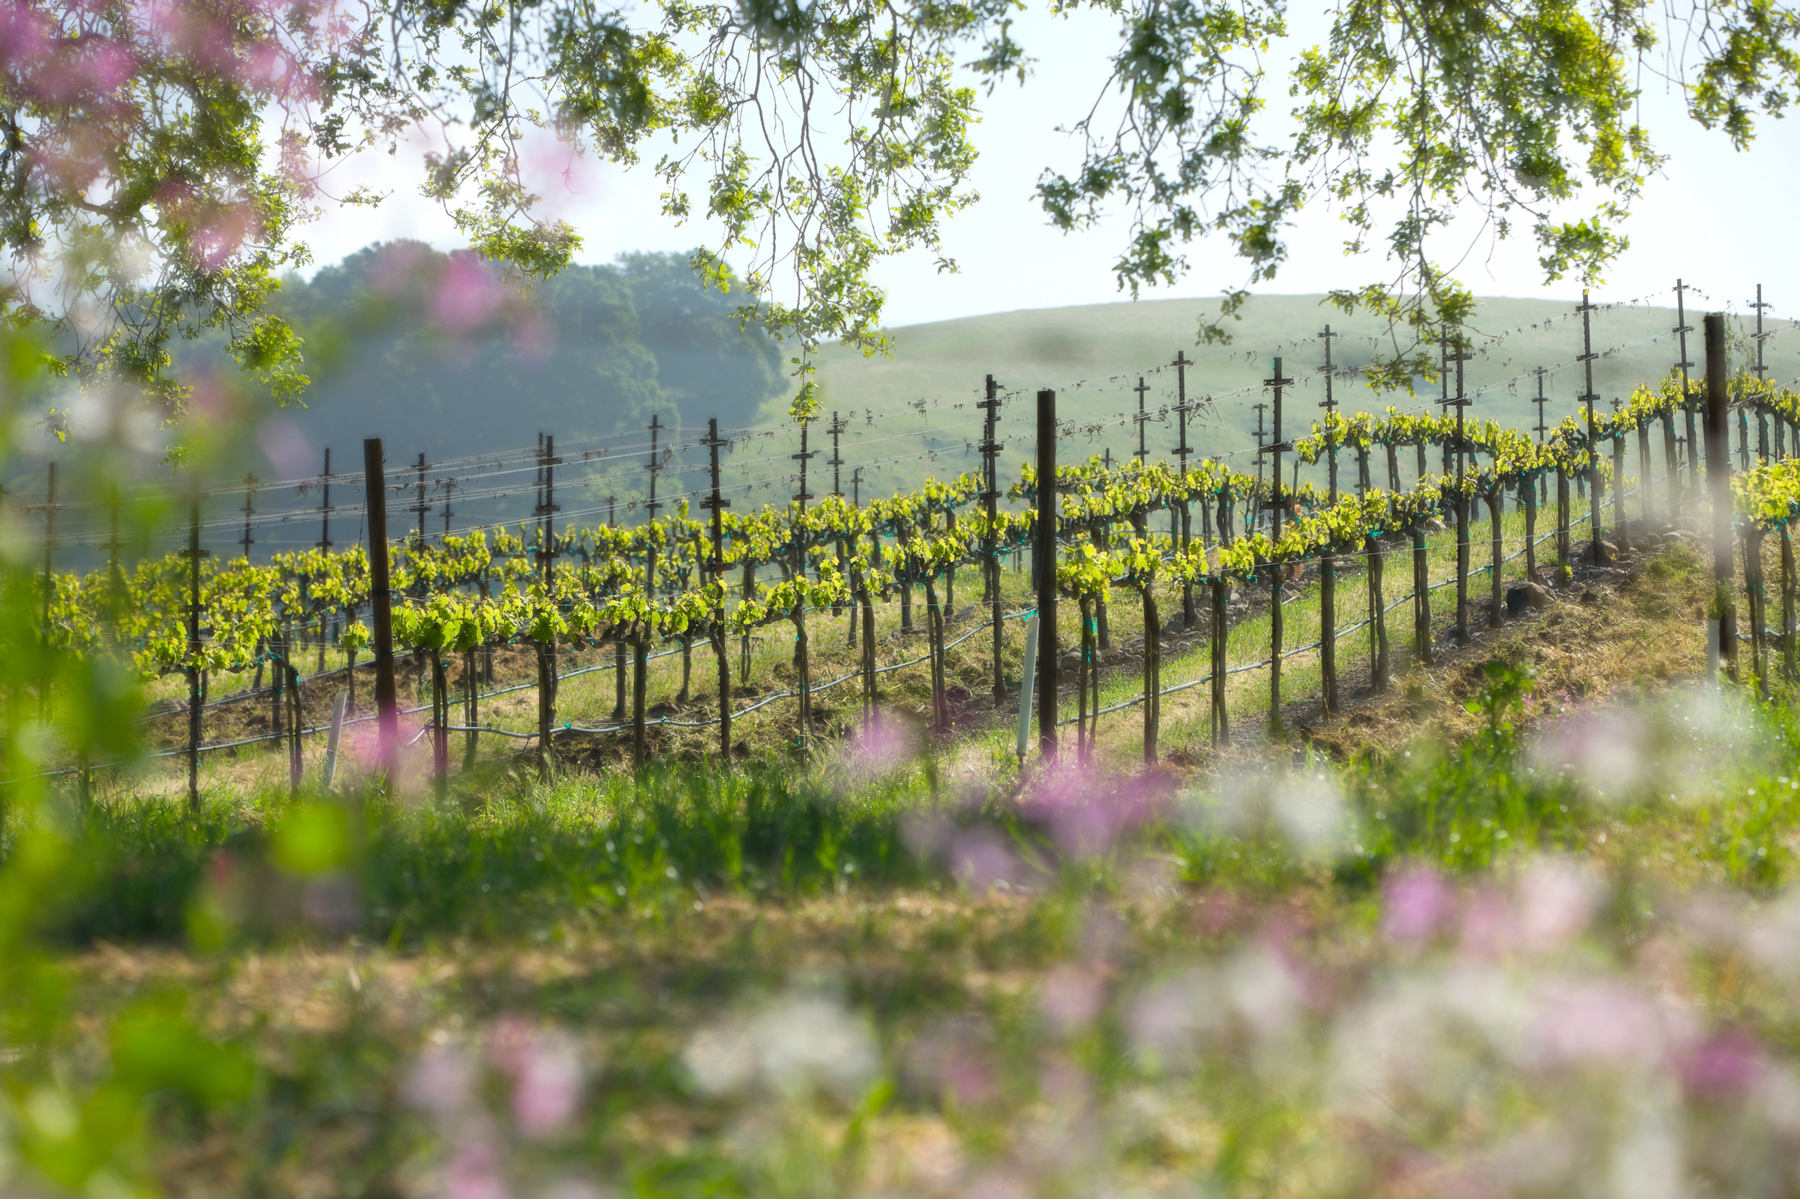 Springtime landscape in Napa Valley, California.